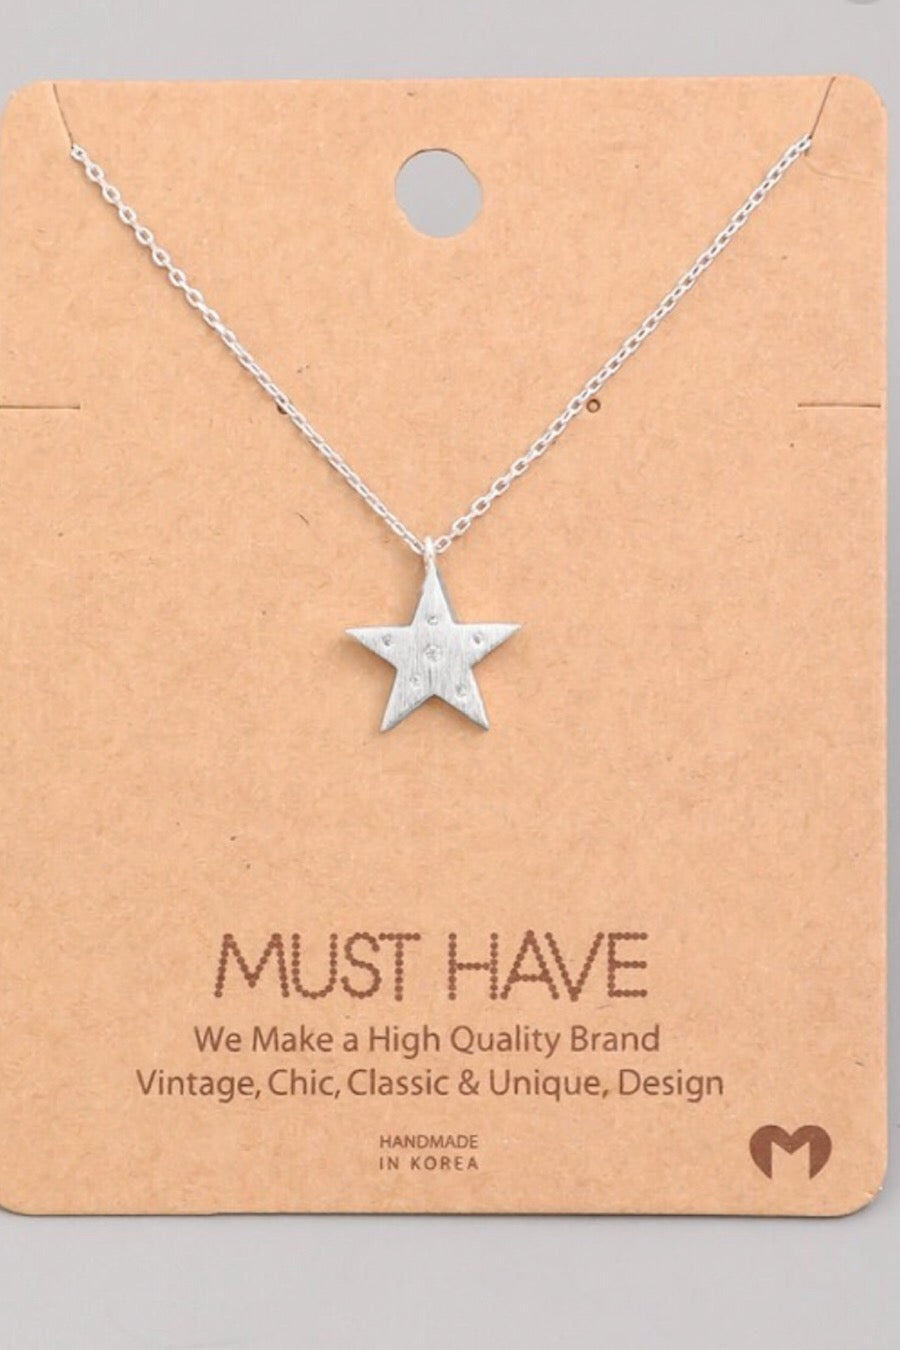 Single Star Necklace in Silver, Gold or Rosegold